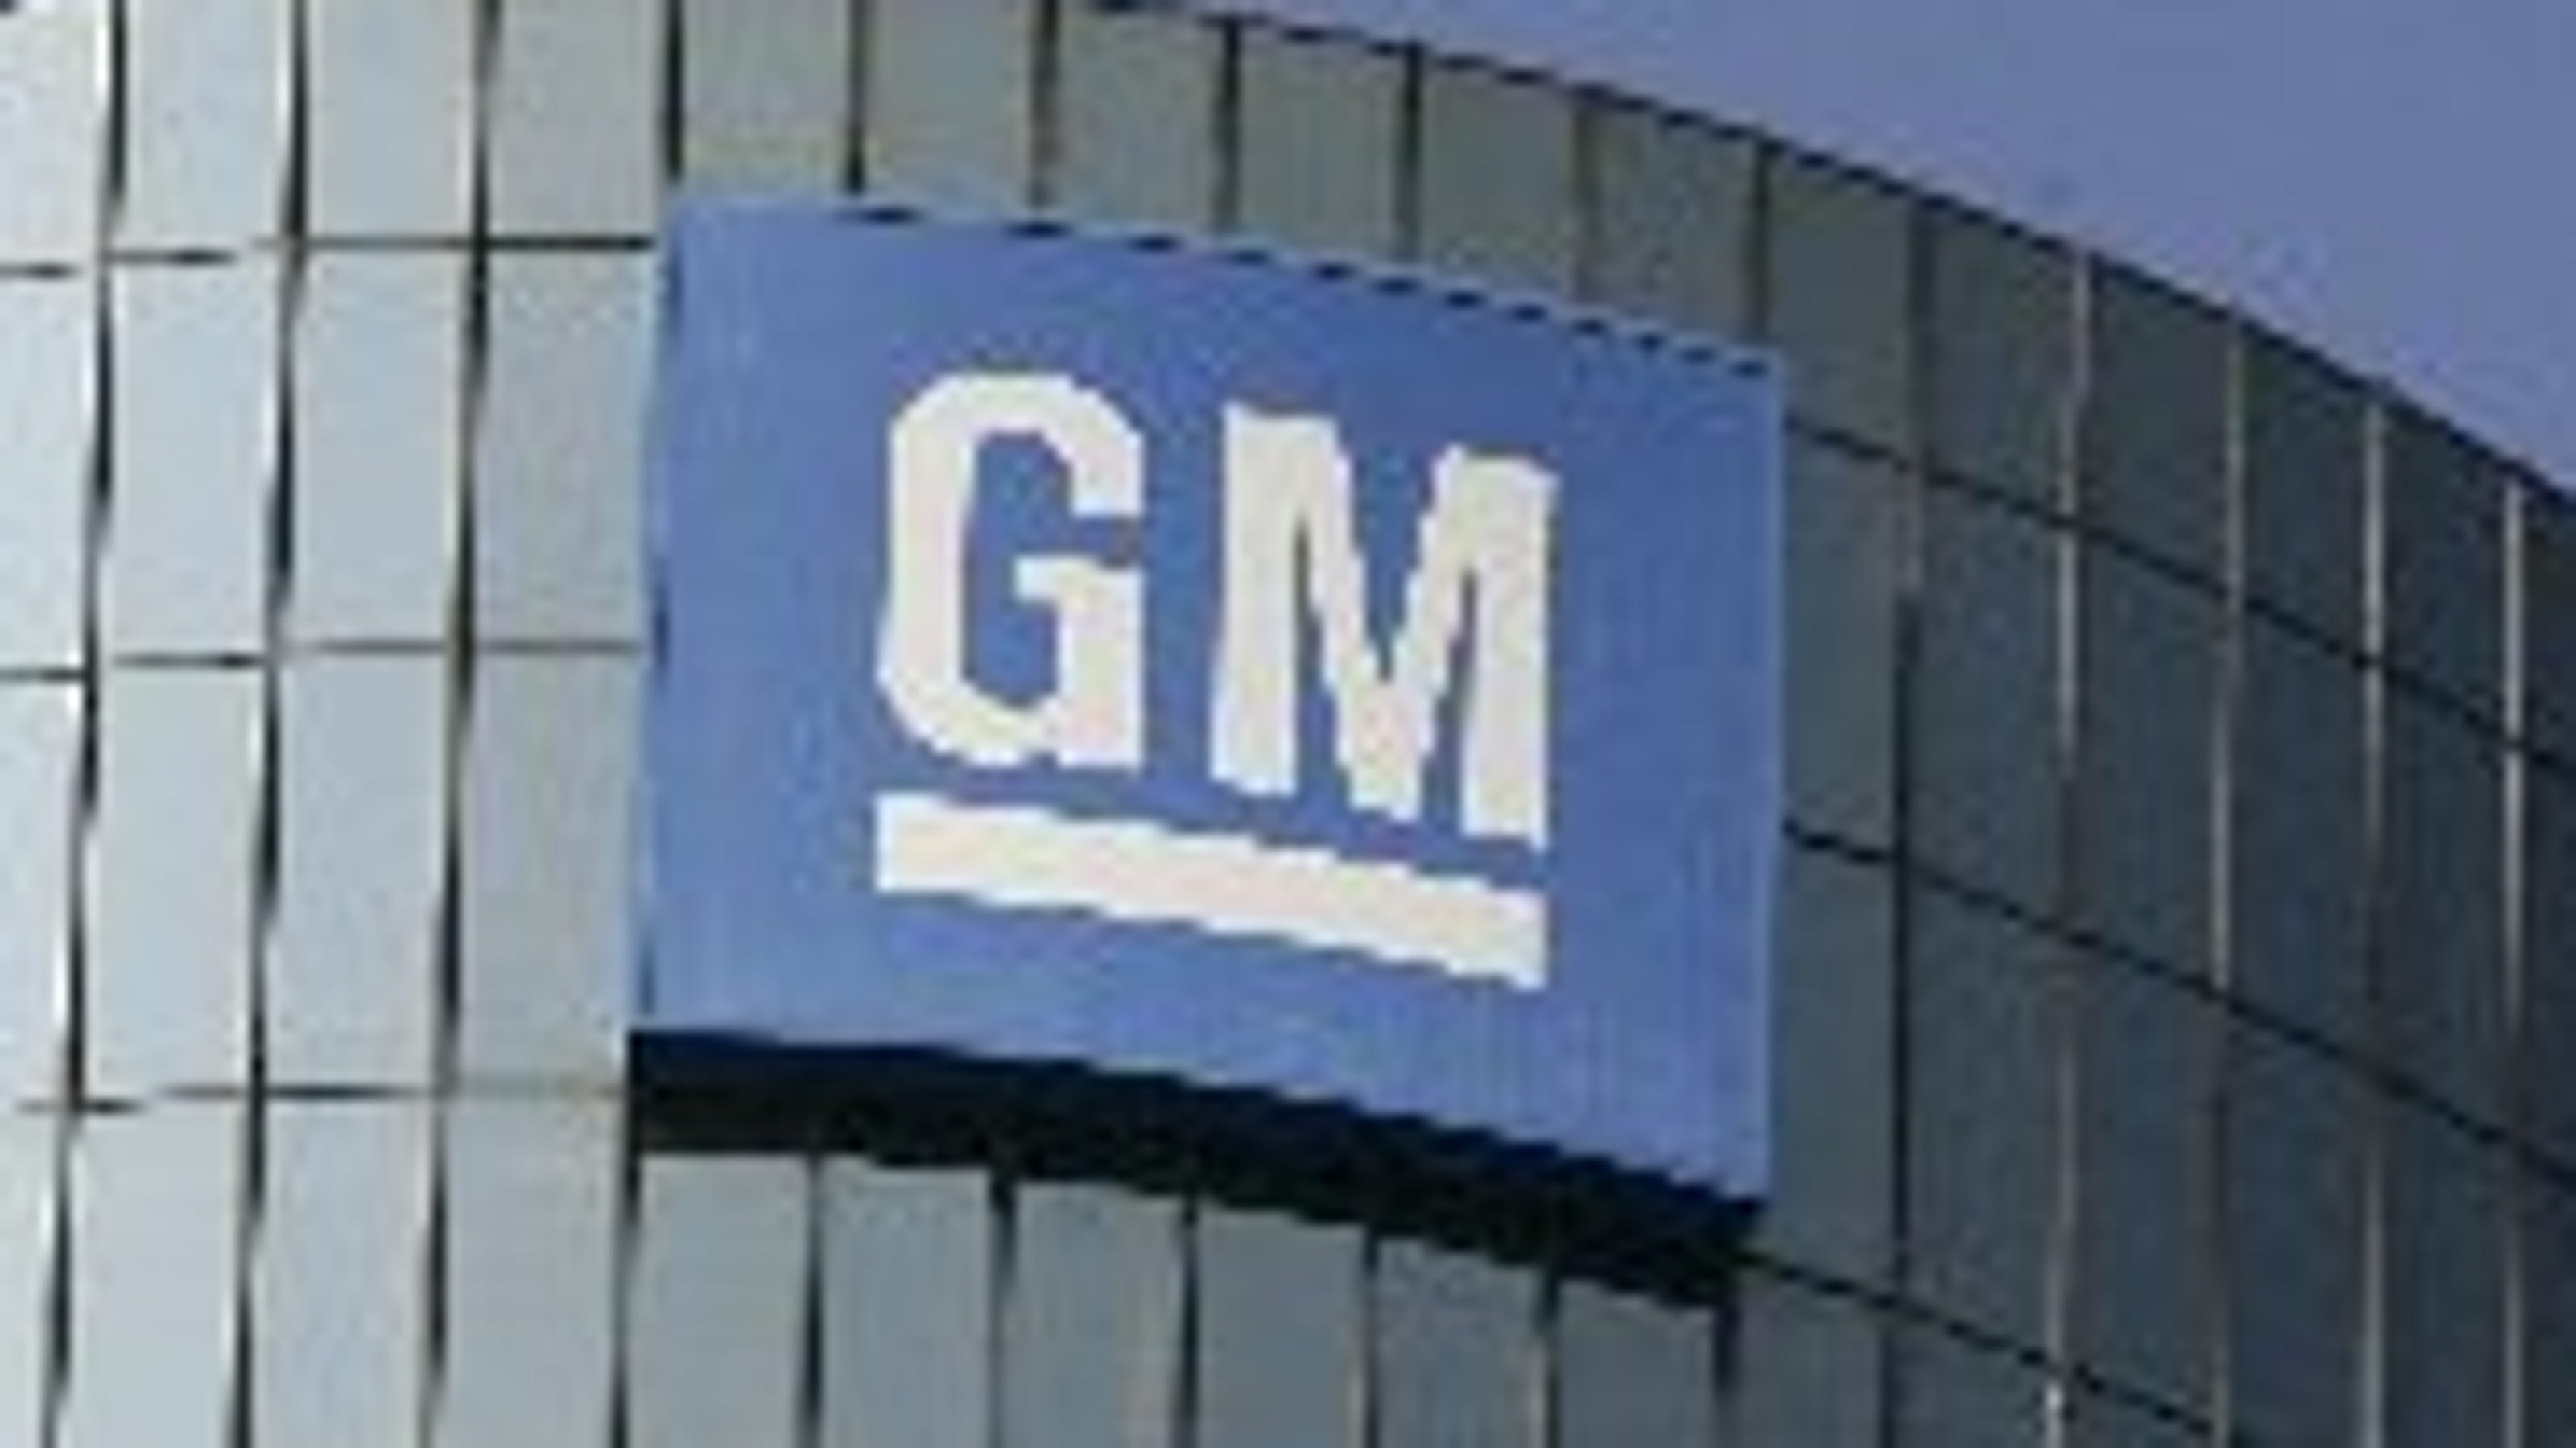 Gm To Invest 1 Billion In U S After Pressure From Trump